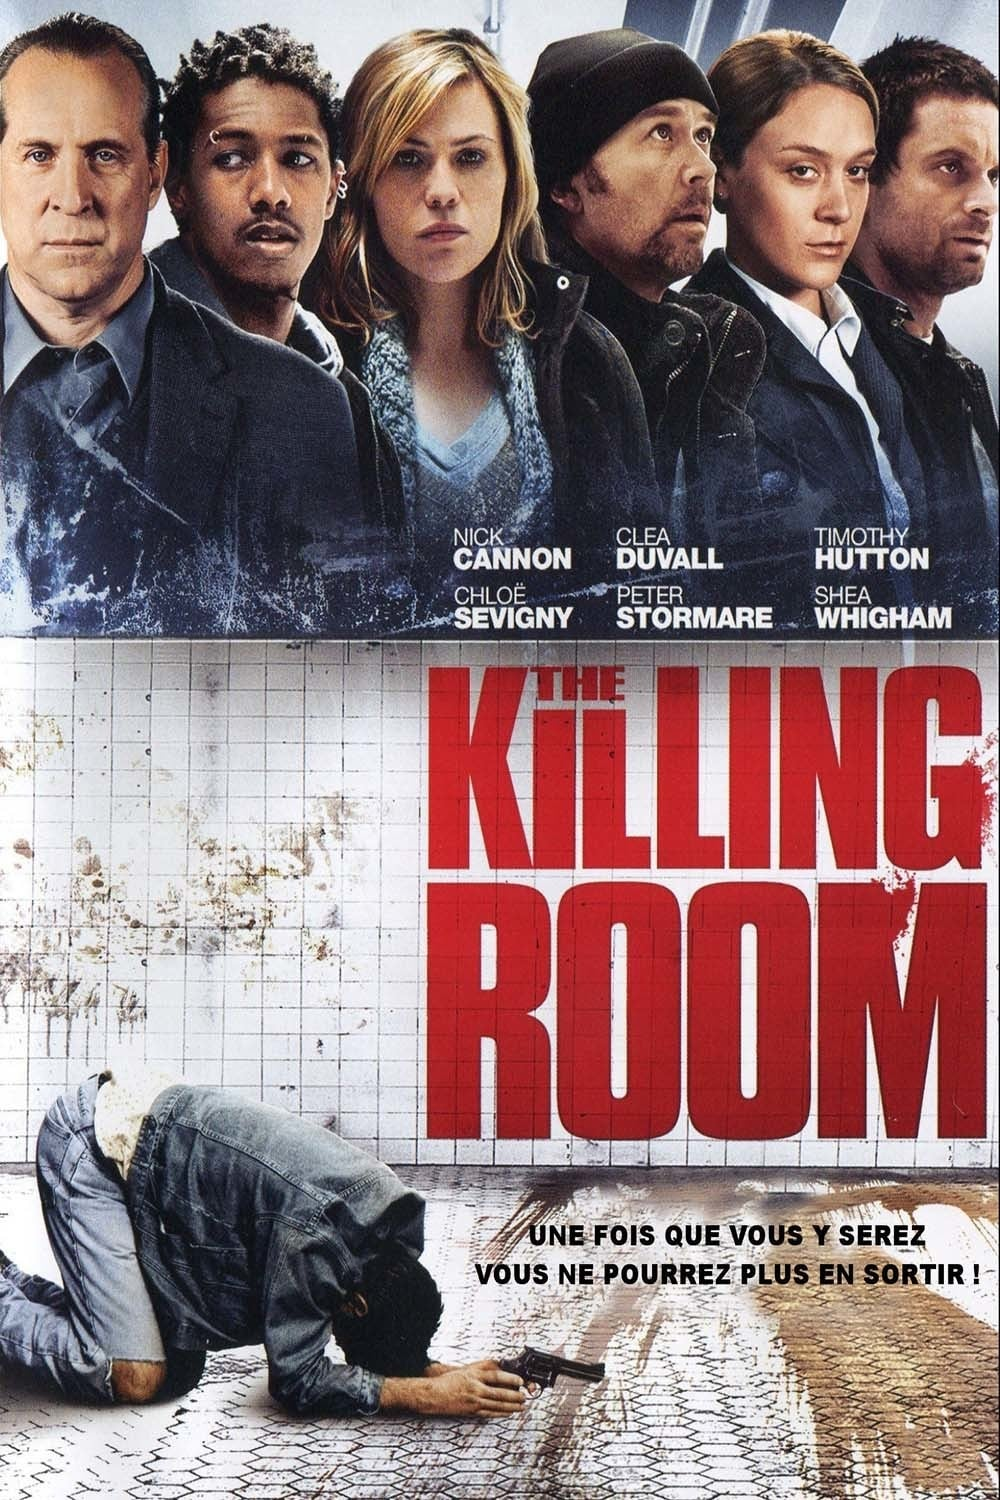 Poster and image movie Film Experiment diabolic - The Killing Room - The Killing Room - The Killing Room -  2009